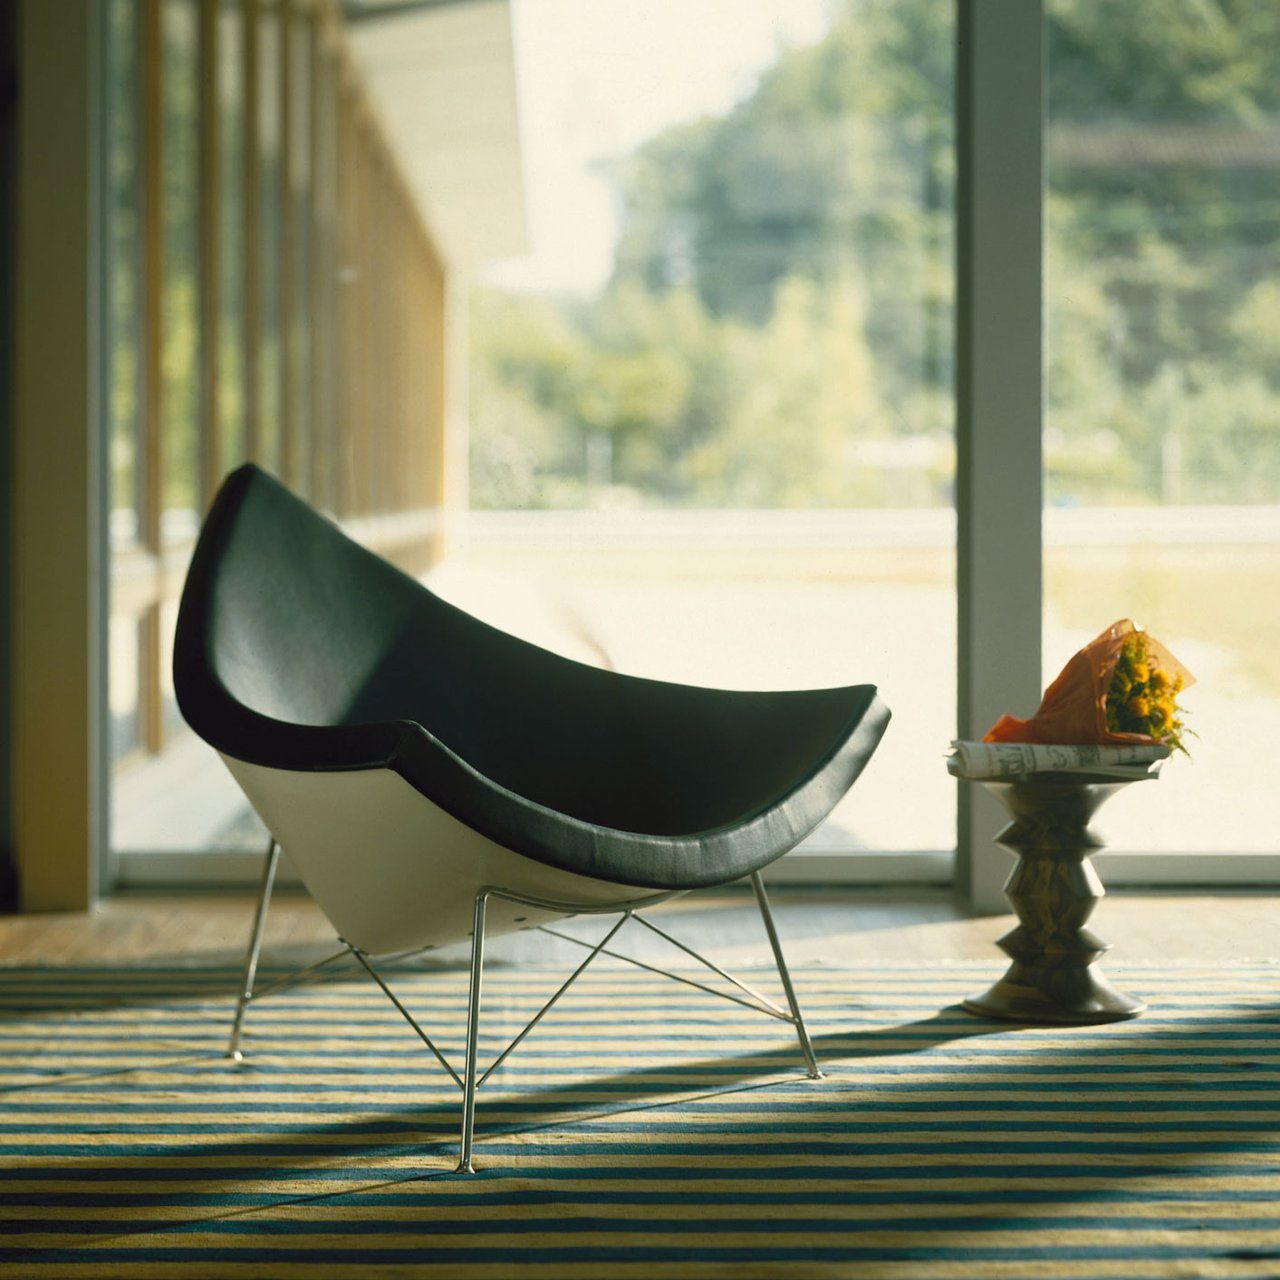 Nelson Coconut Chair #Chair, #Comfortable, #Design